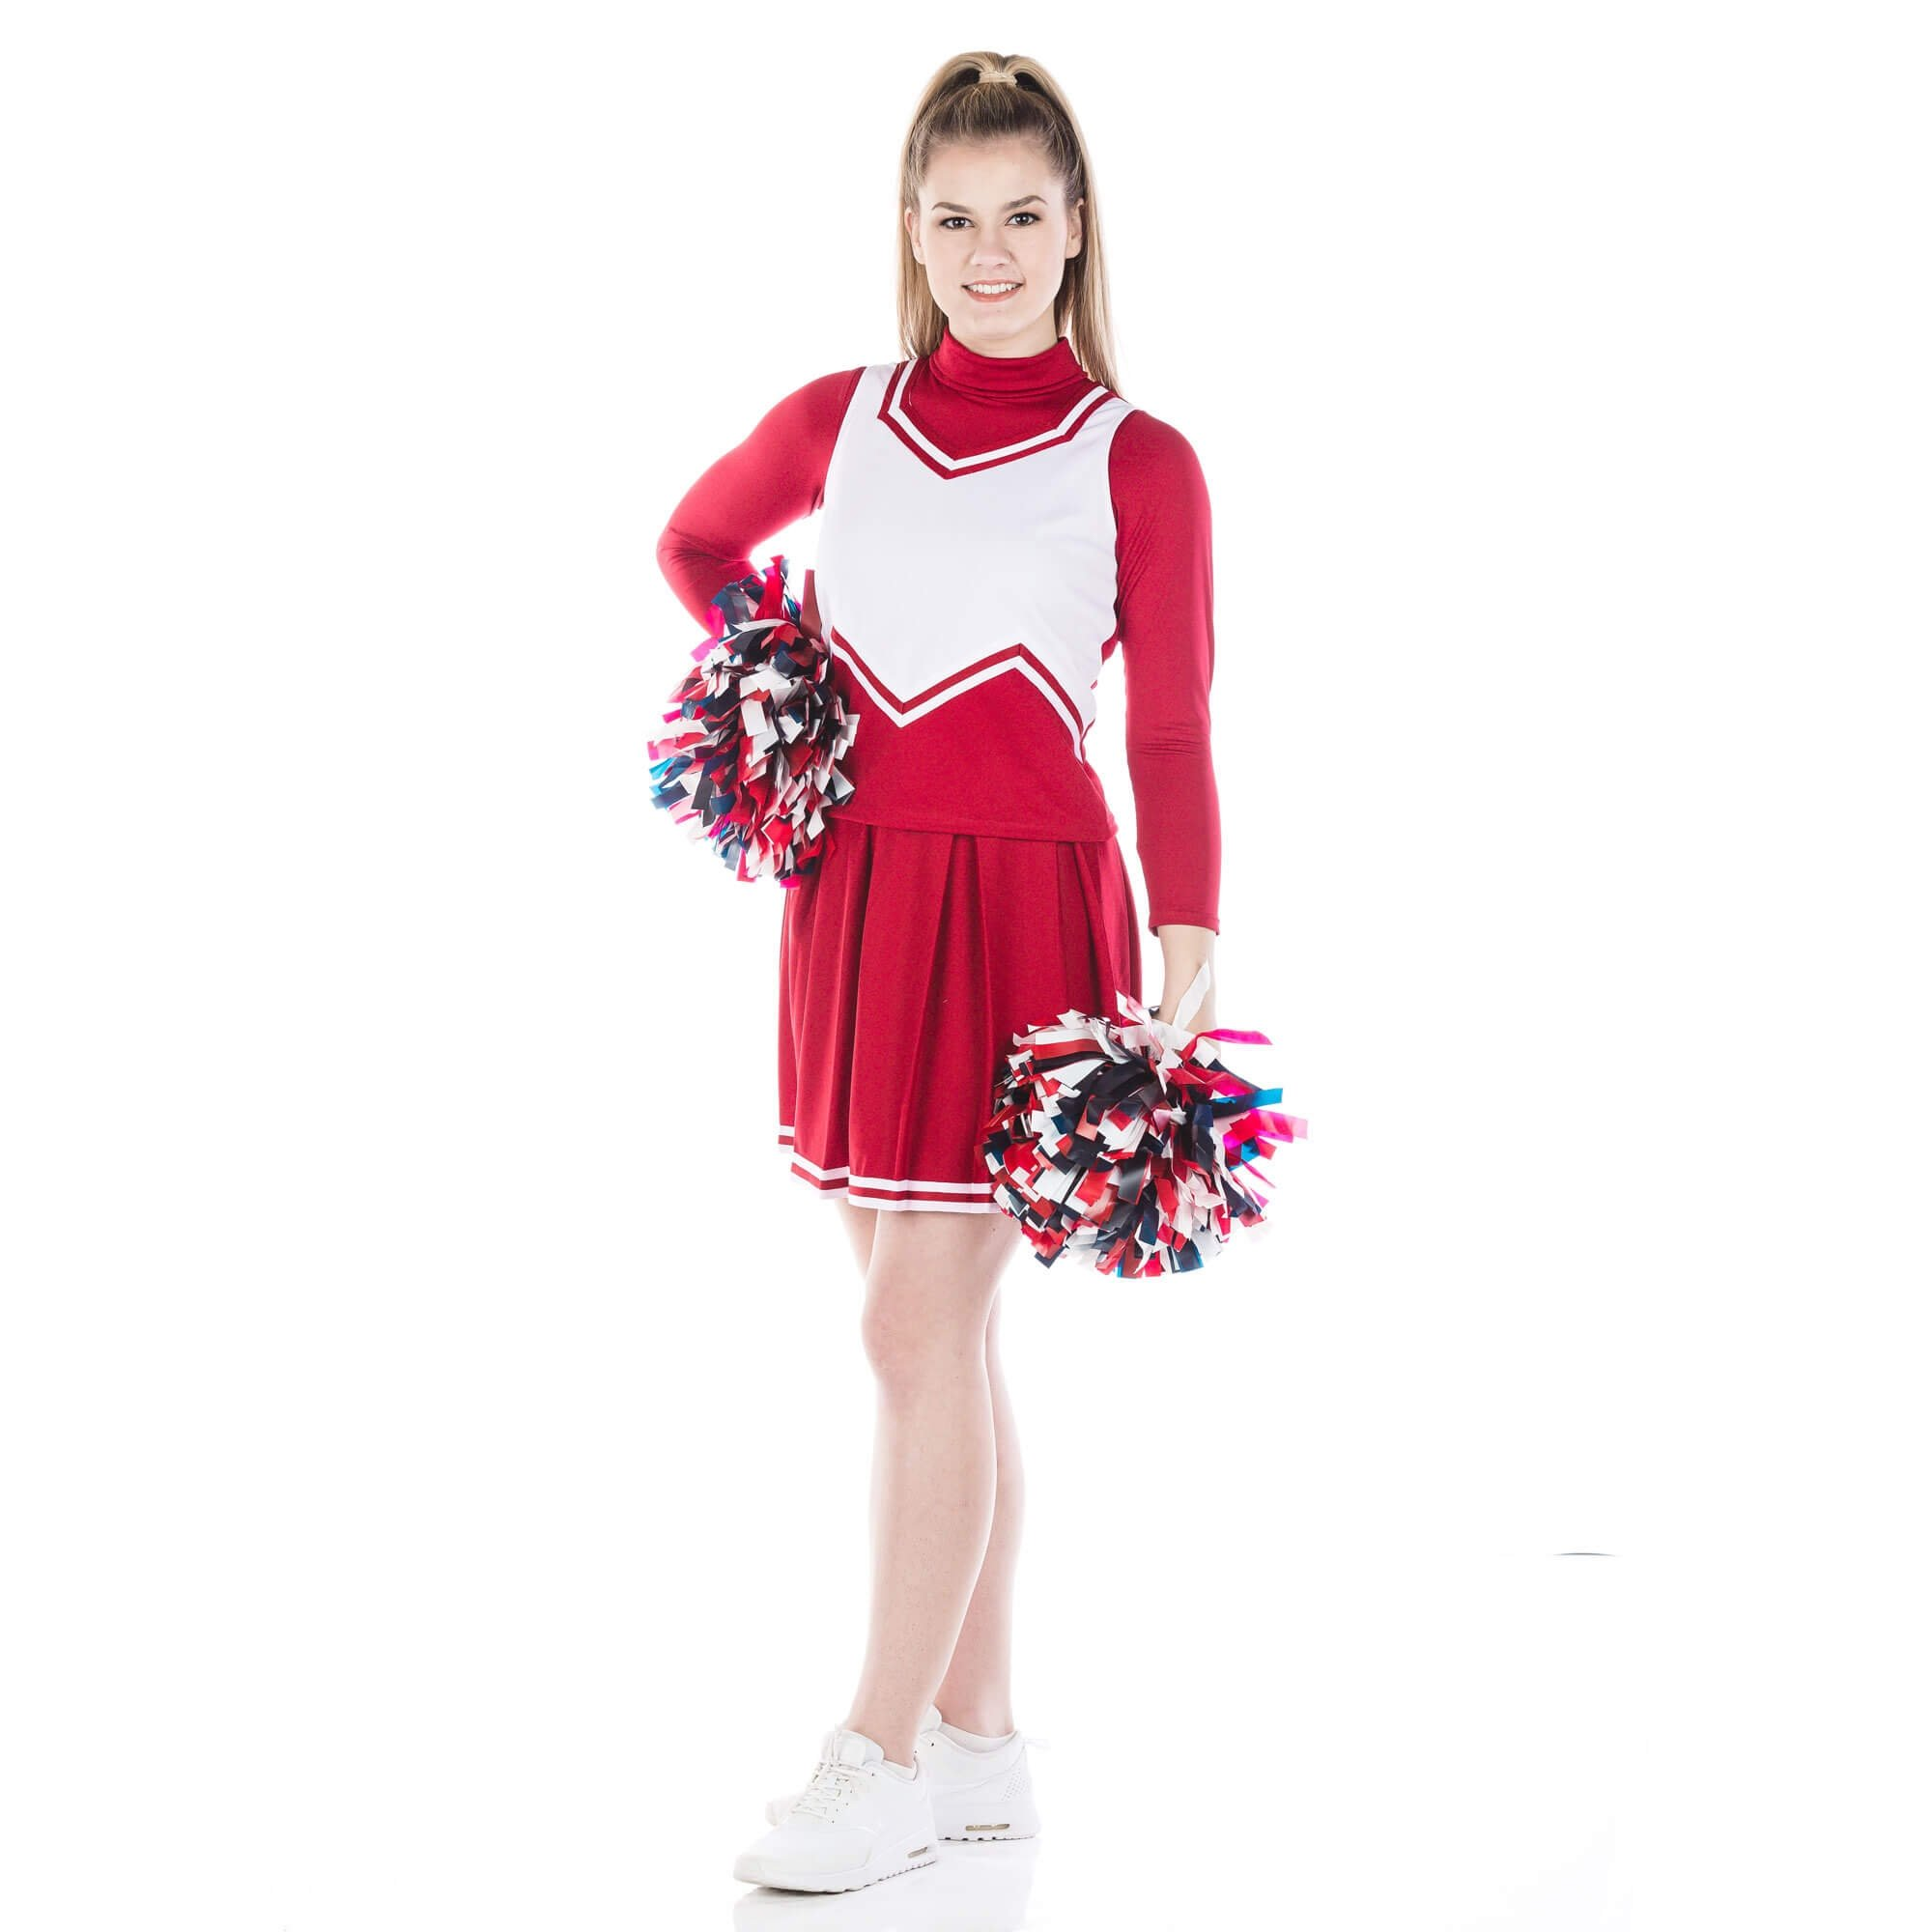 Danzcue Adult M Sweetheart Knit Pleat Skirt Cheerleaders Uniform Set